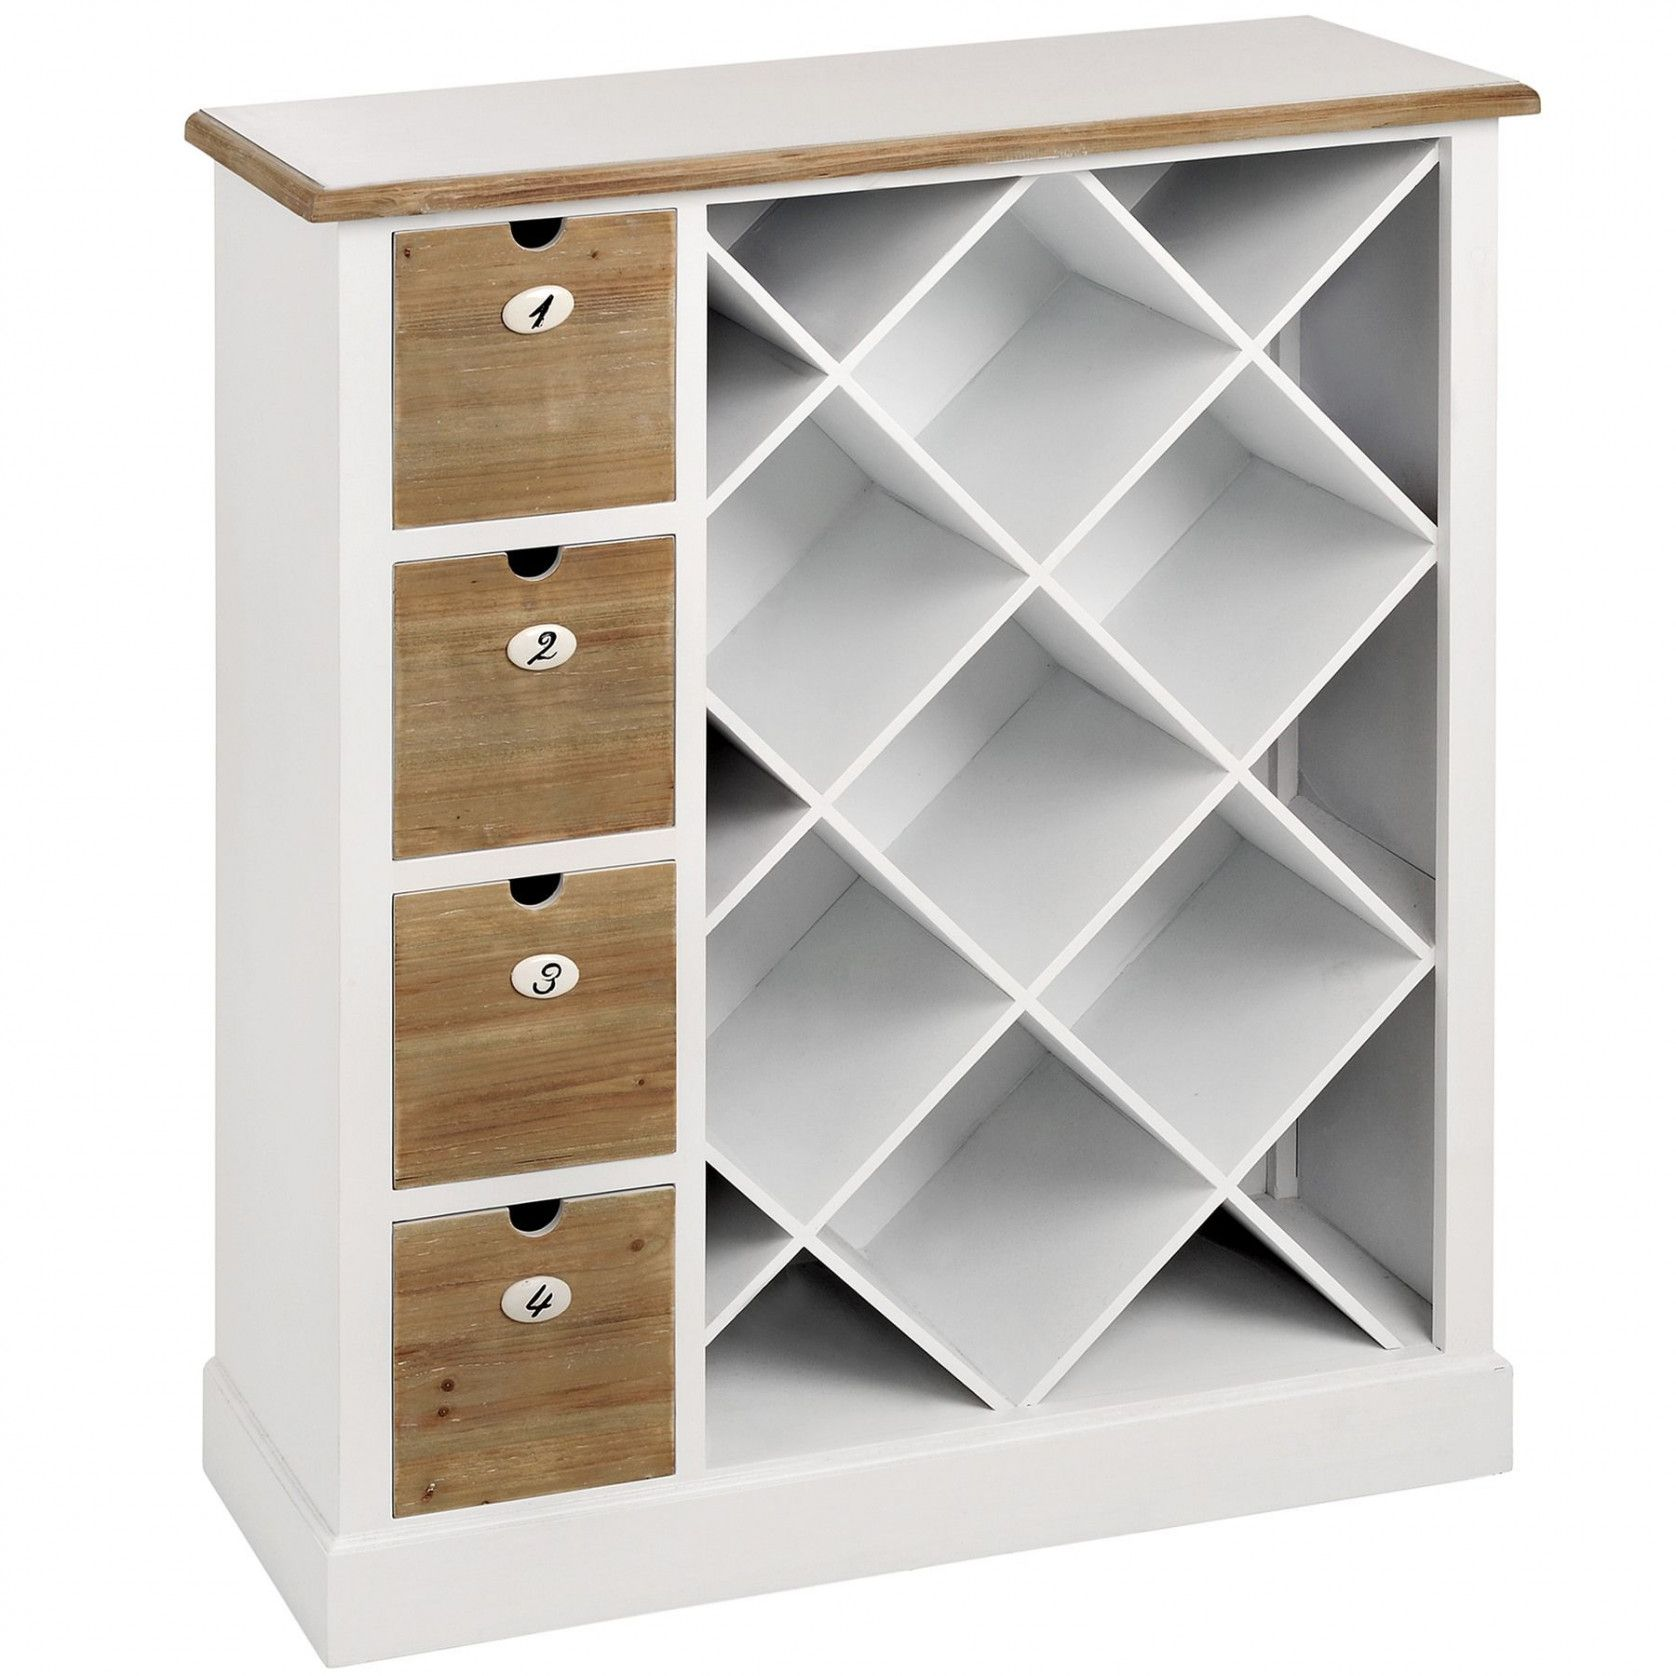 2018 Wine Storage Cabinets Uk Kitchen Island Countertop Ideas Check More At Http